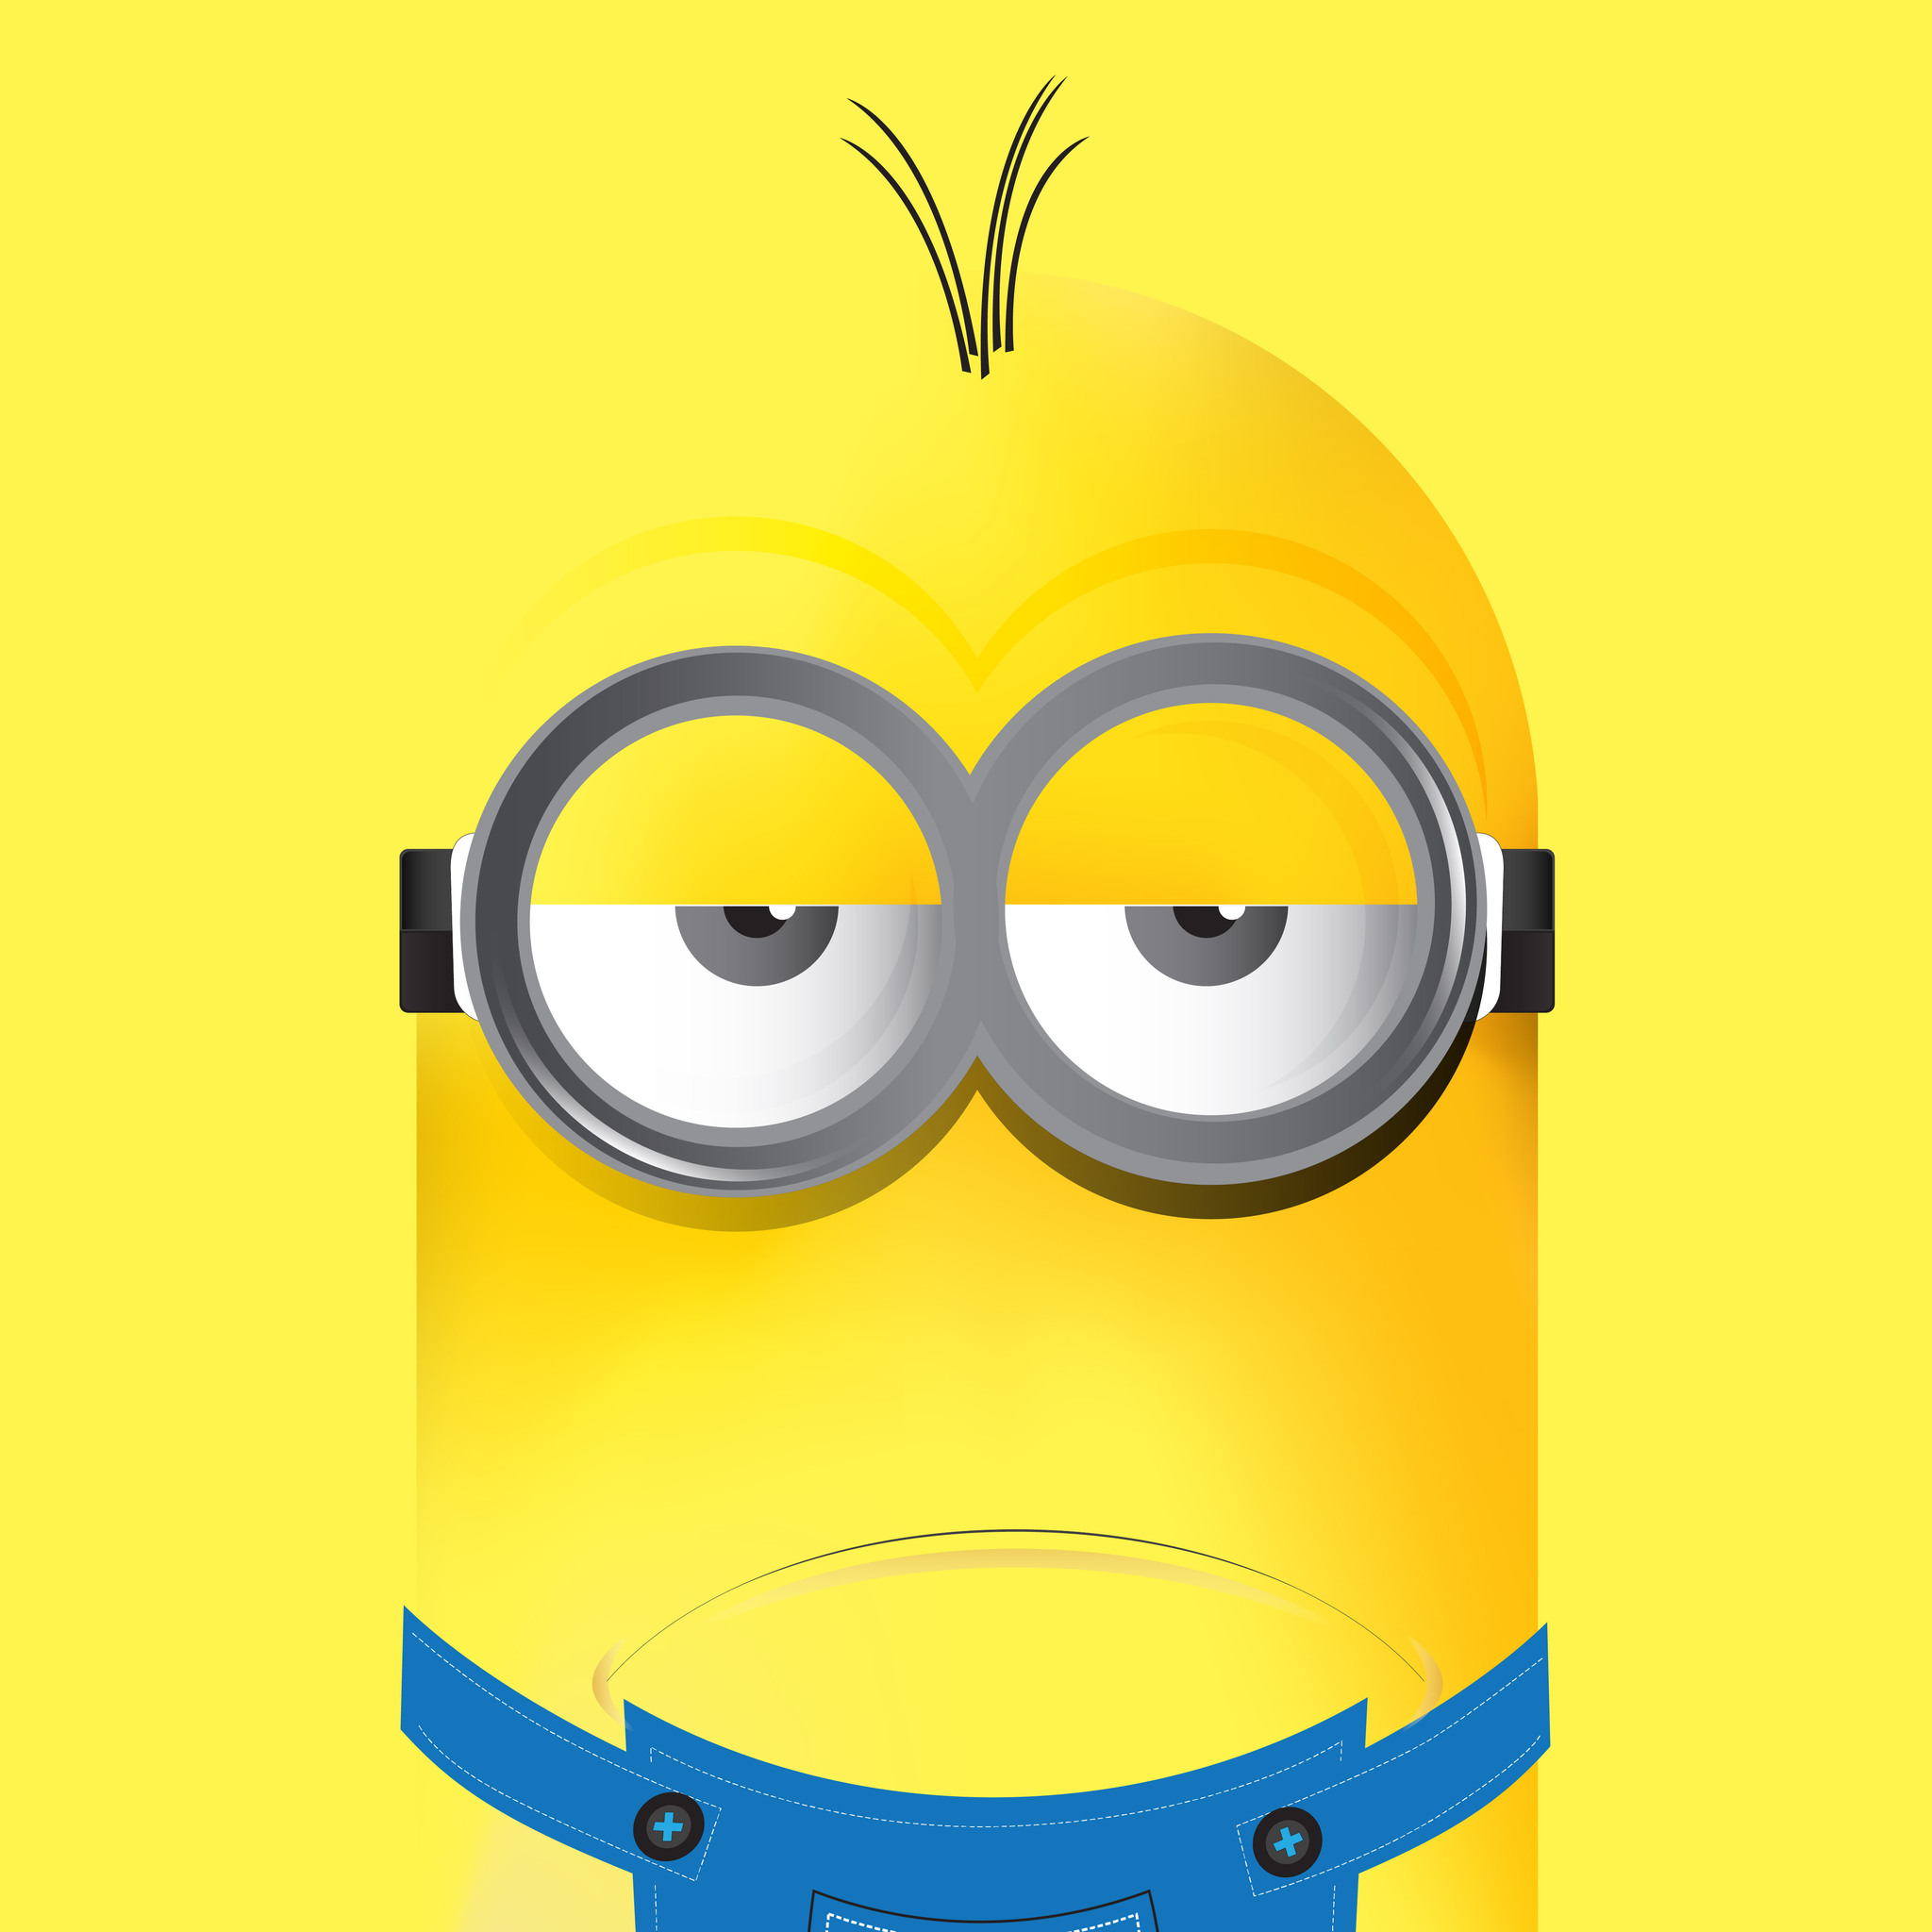 2048x2048 minions 8k background ipad air hd 4k wallpapers, images